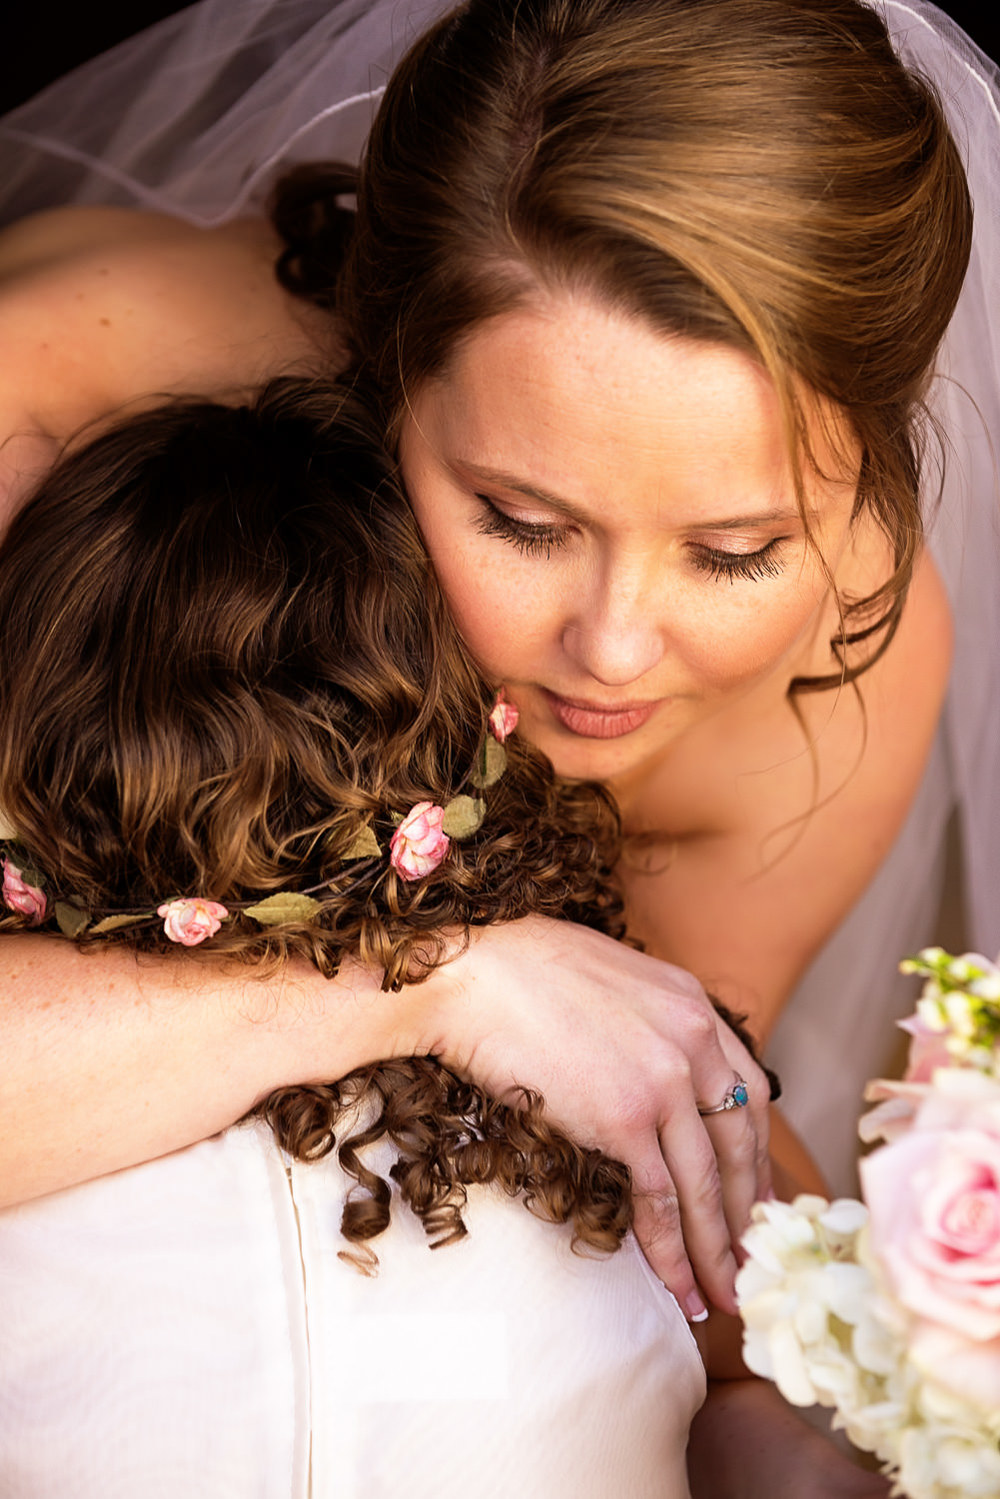 The bride giving her flower girl a big hug. Rustic and intimate backyard wedding in Ojai California